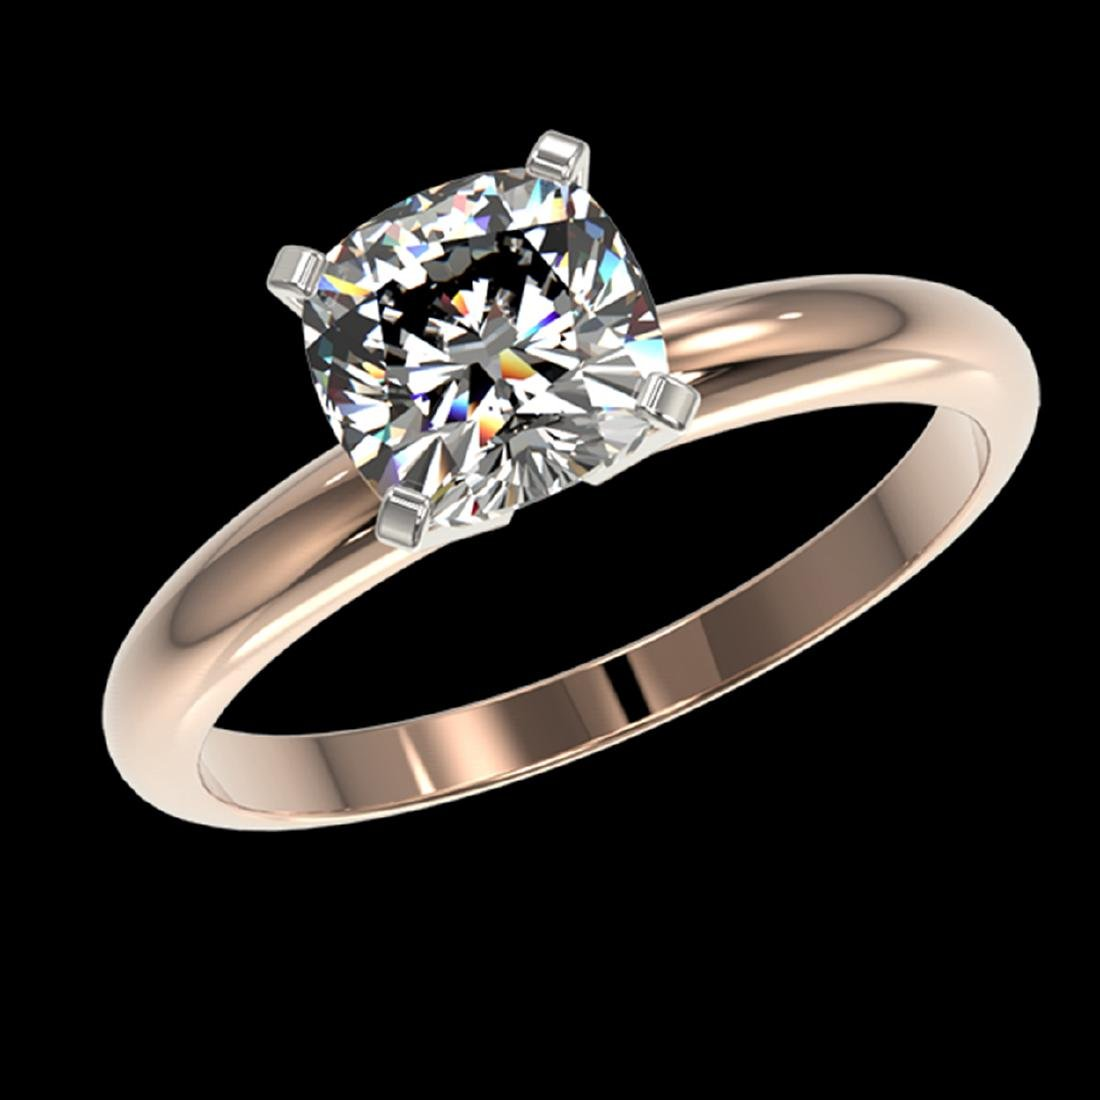 1.25 ctw VS/SI Cushion Cut Diamond Ring 10K Rose Gold - - 2